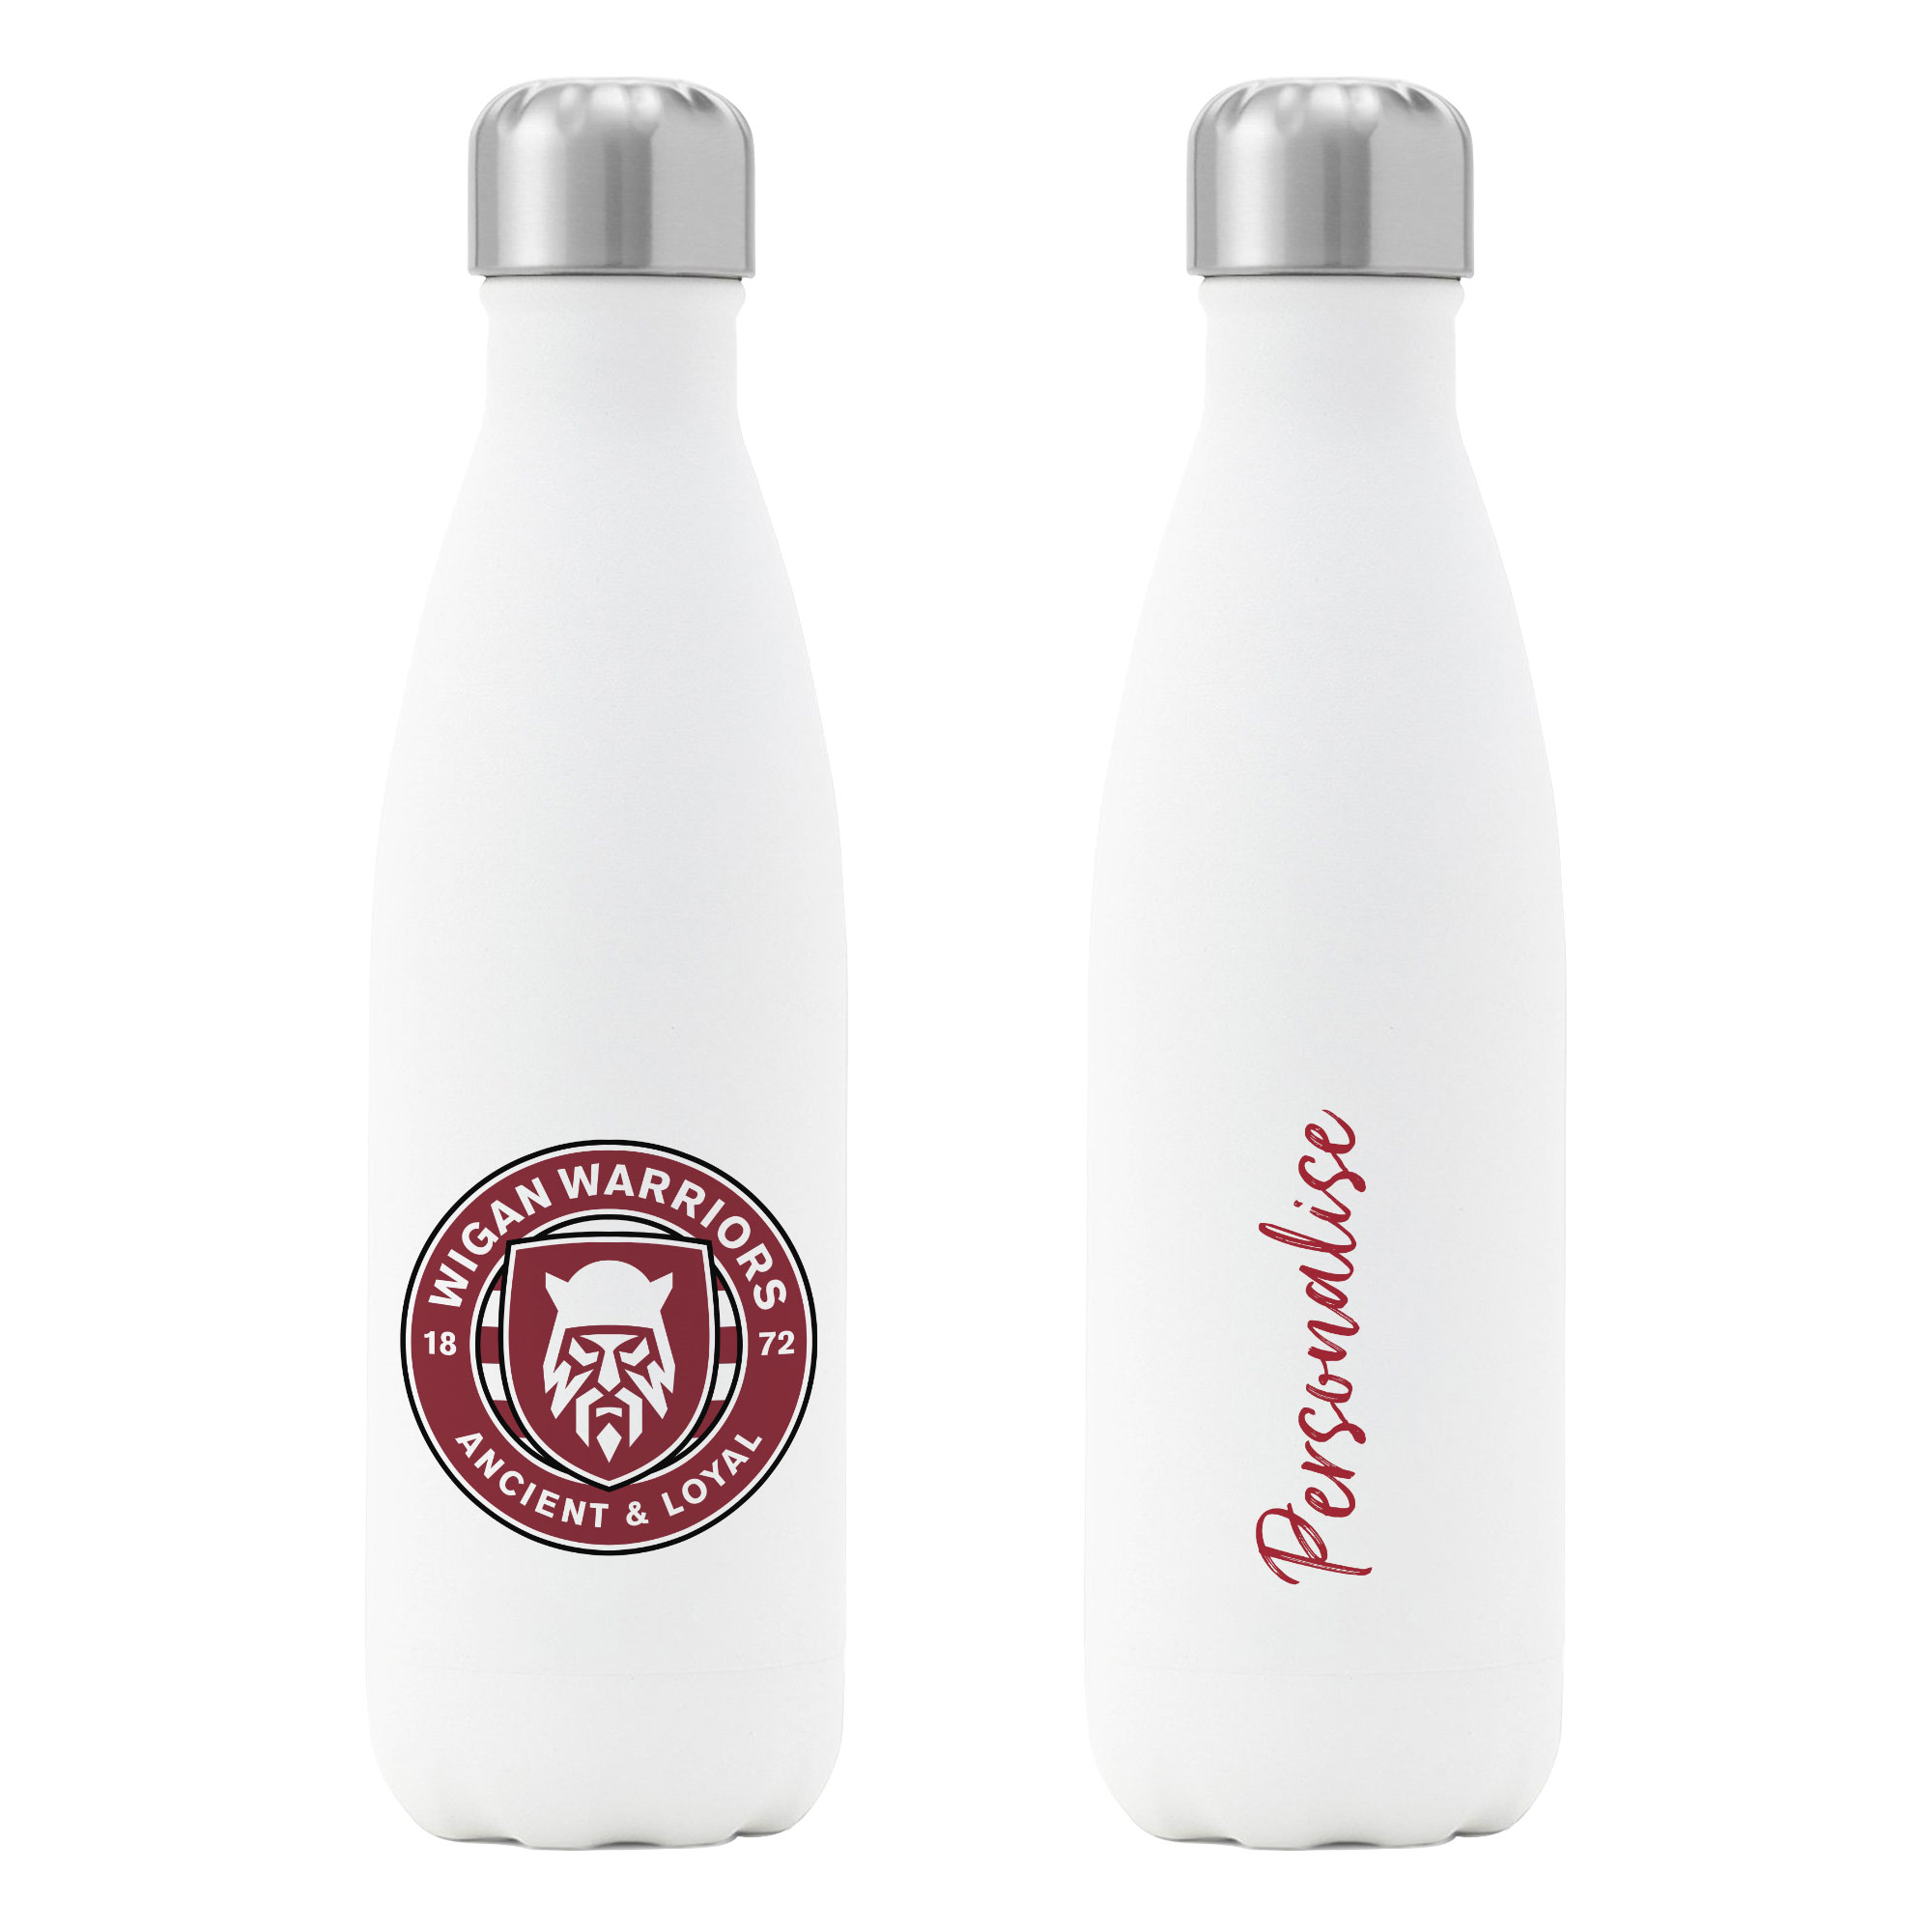 Wigan Warriors Crest Insulated Water Bottle - White